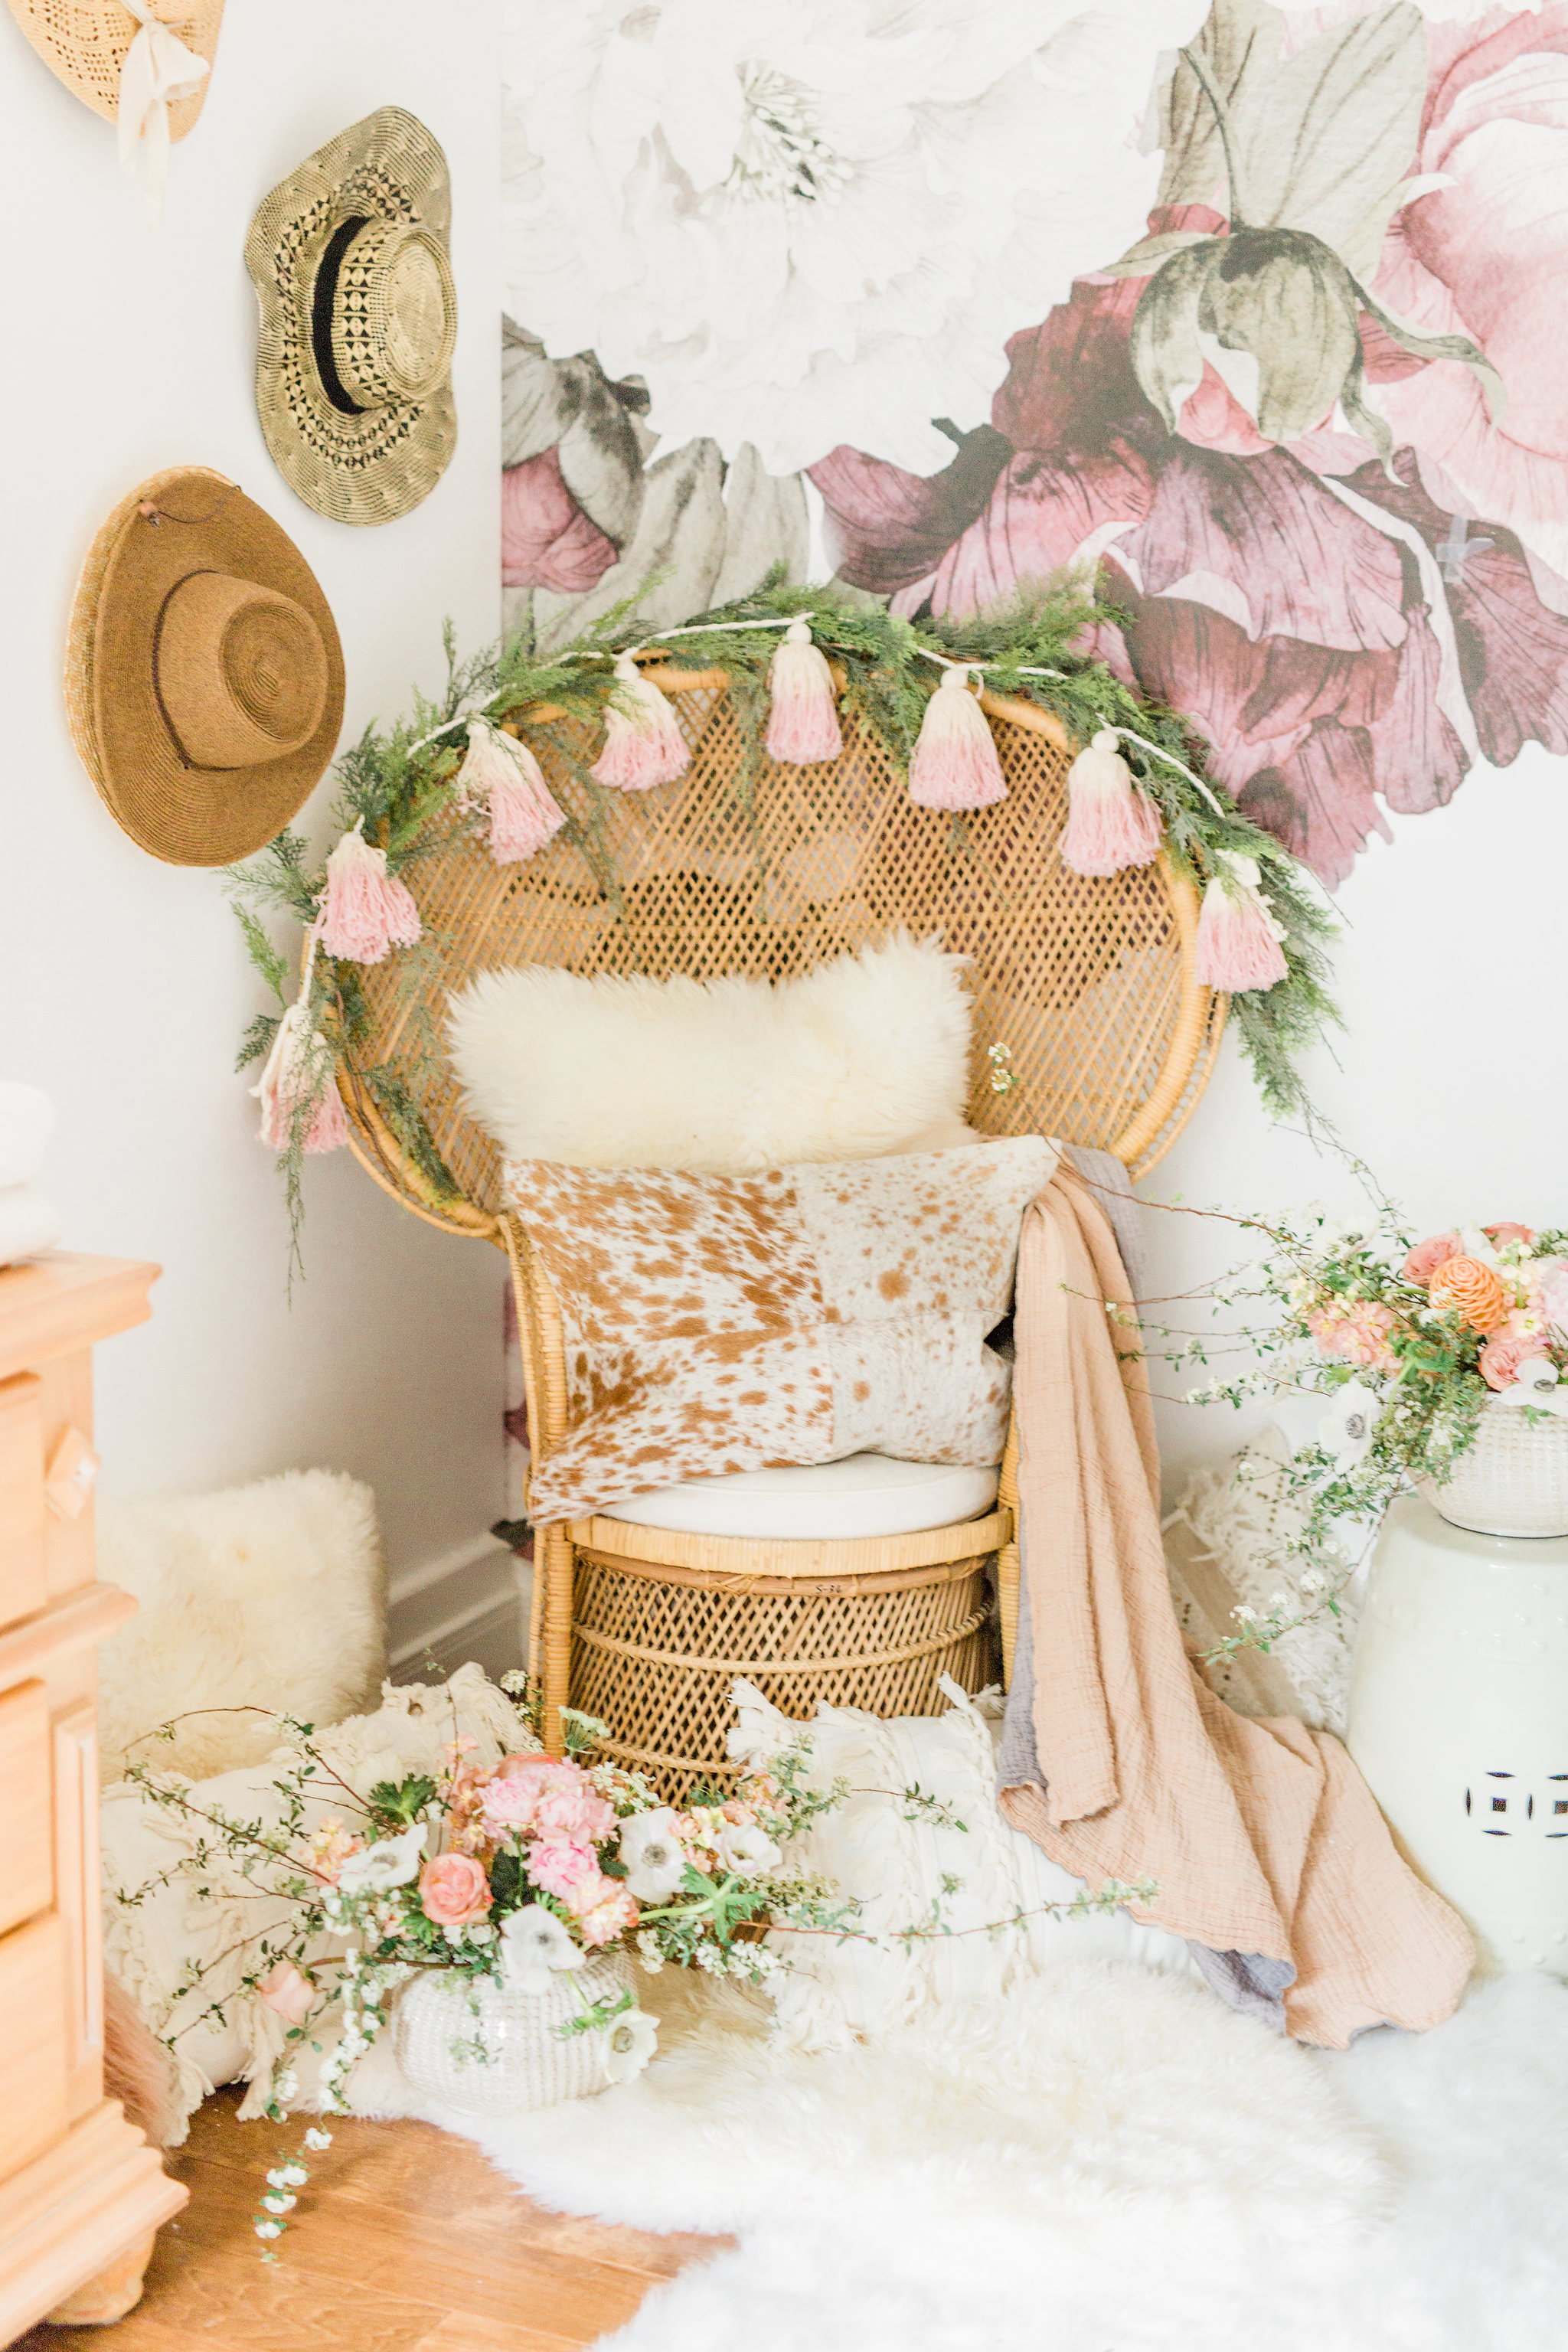 Neutral Blush and White Spring Master Bedroom Makeover, How to make/dress a bed in 3 steps. Peacock chair